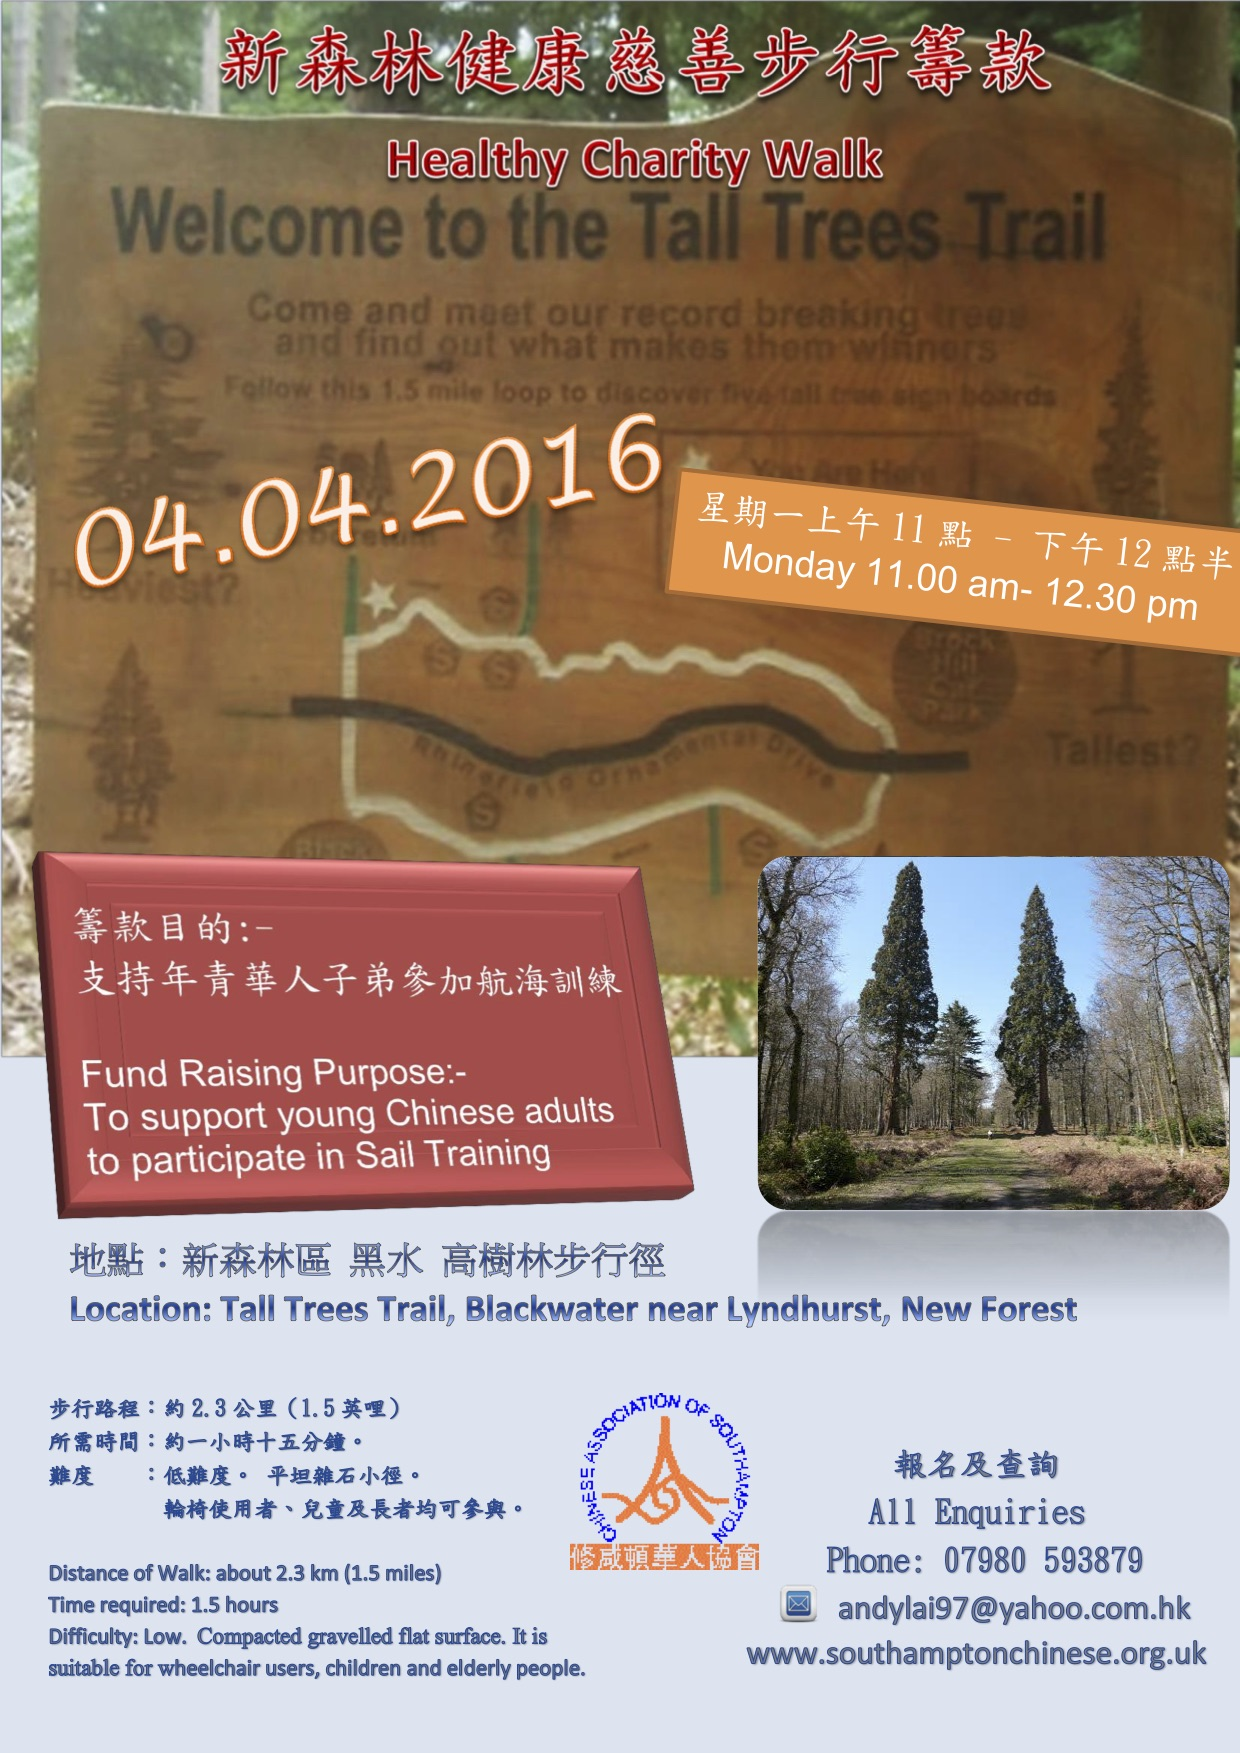 CAS_Tall_Trees_Trail_Poster_2016